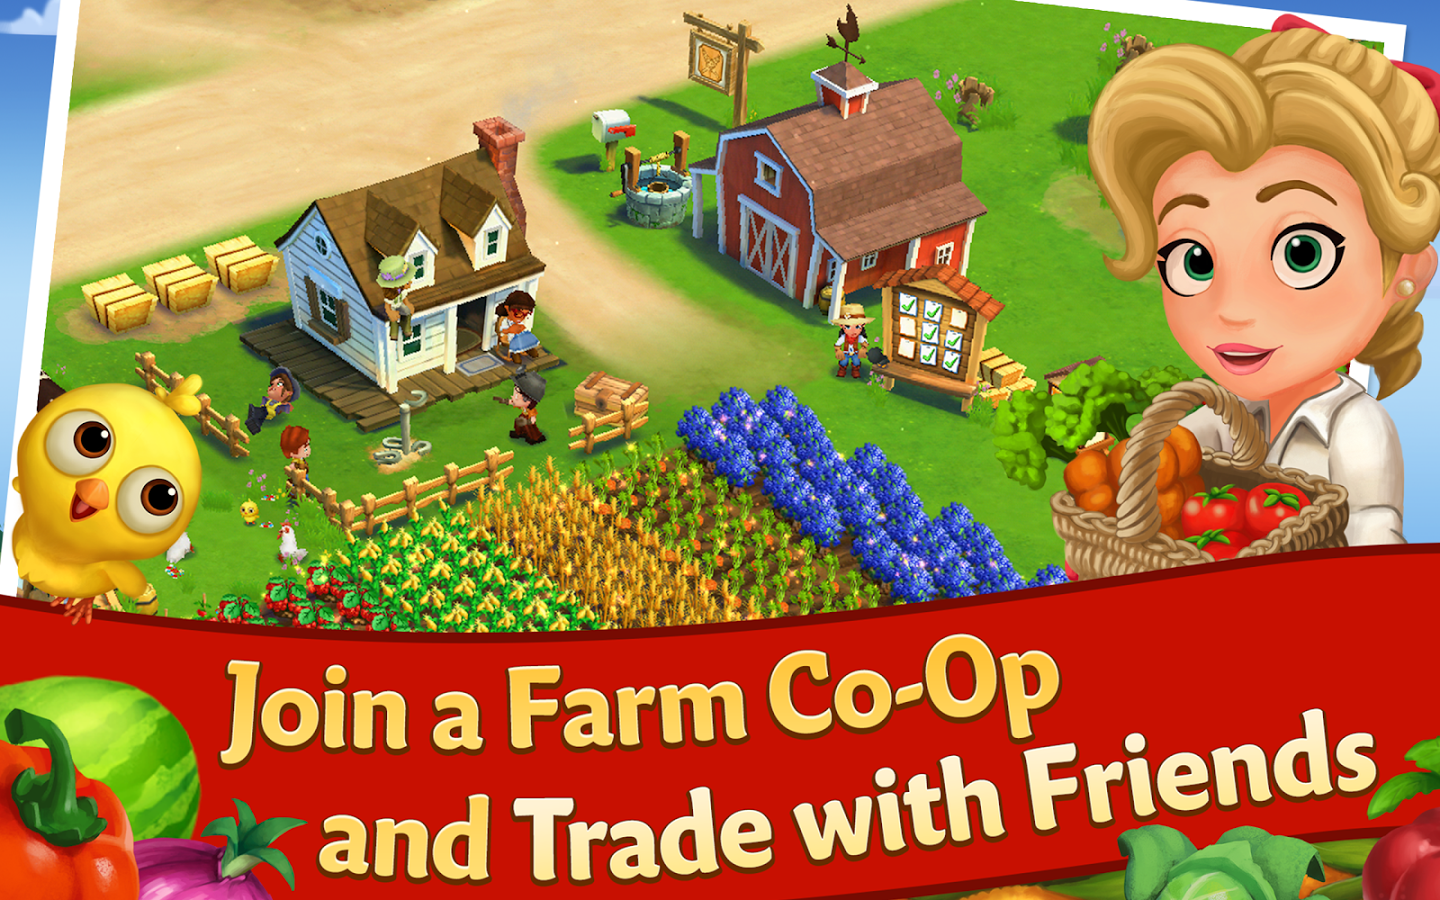 Image currently unavailable. Go to www.generator.fewhack.com and choose FarmVille 2: Country Escape image, you will be redirect to FarmVille 2: Country Escape Generator site.